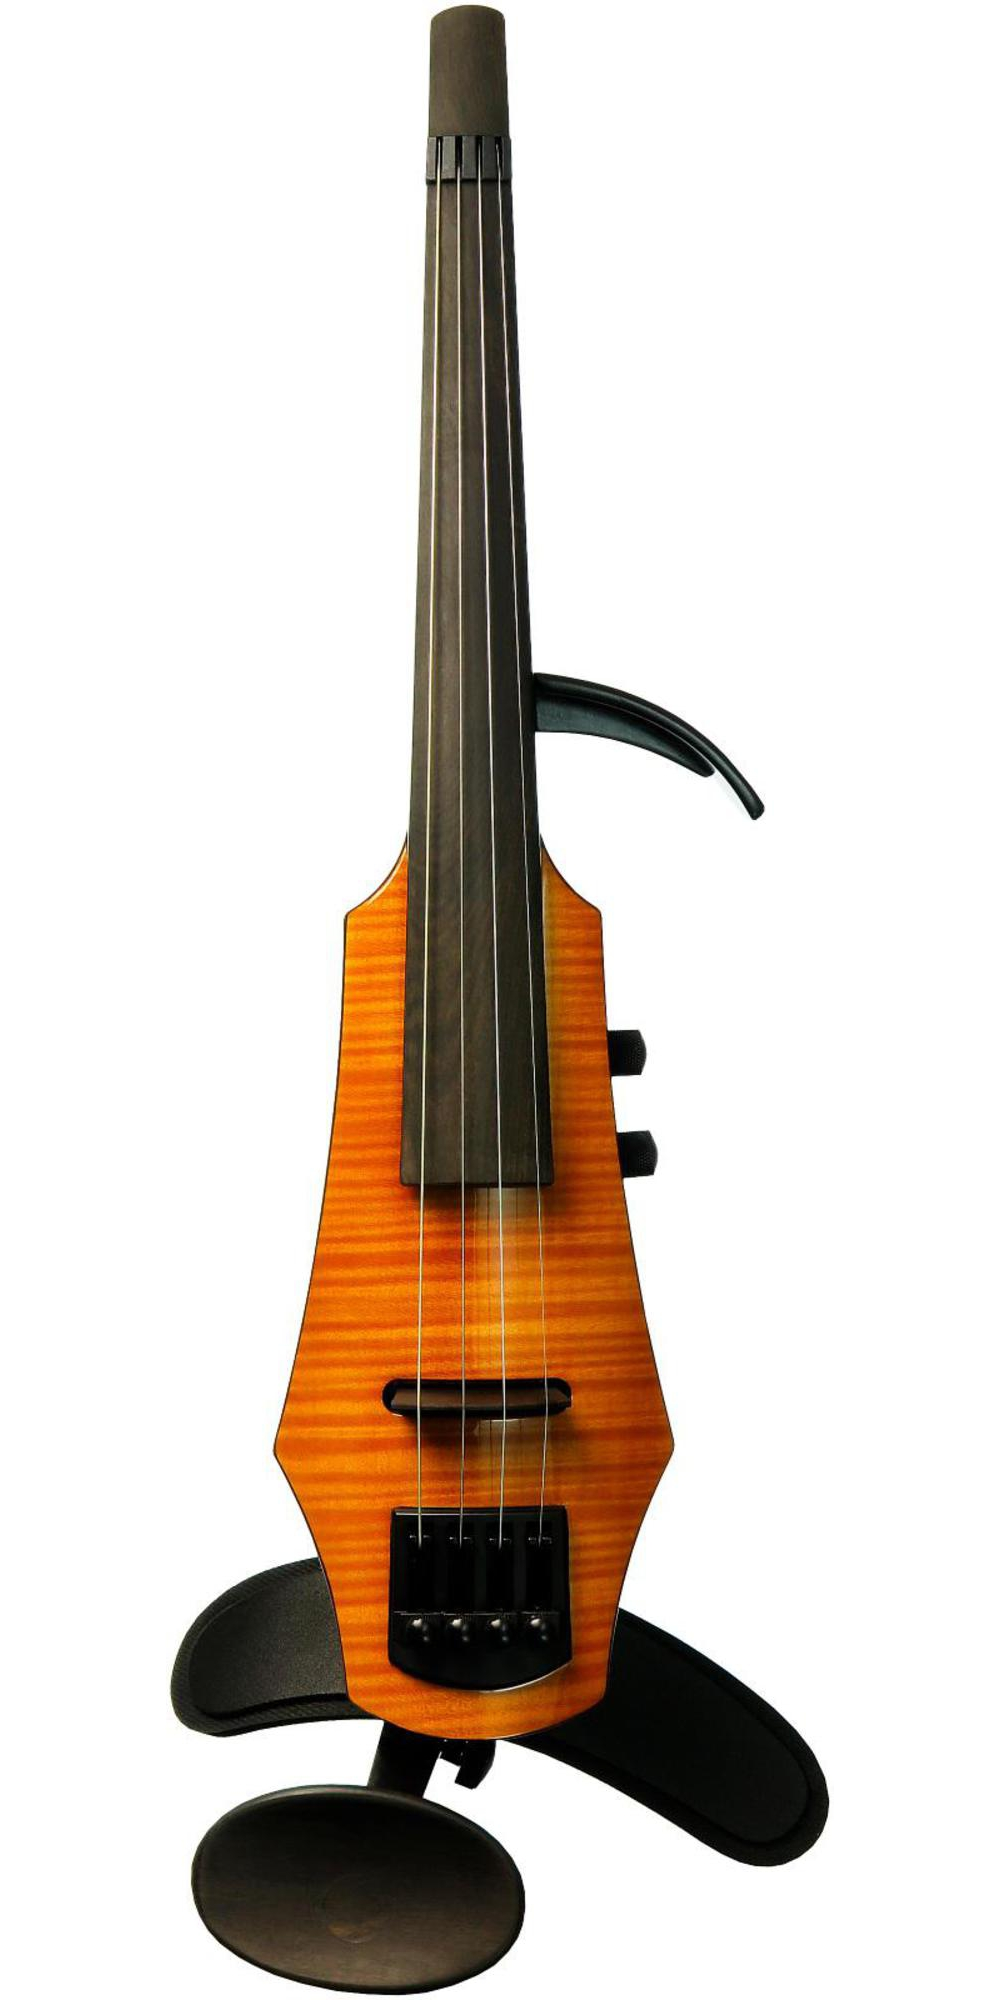 WAV 4 Electric Violin by NS Design